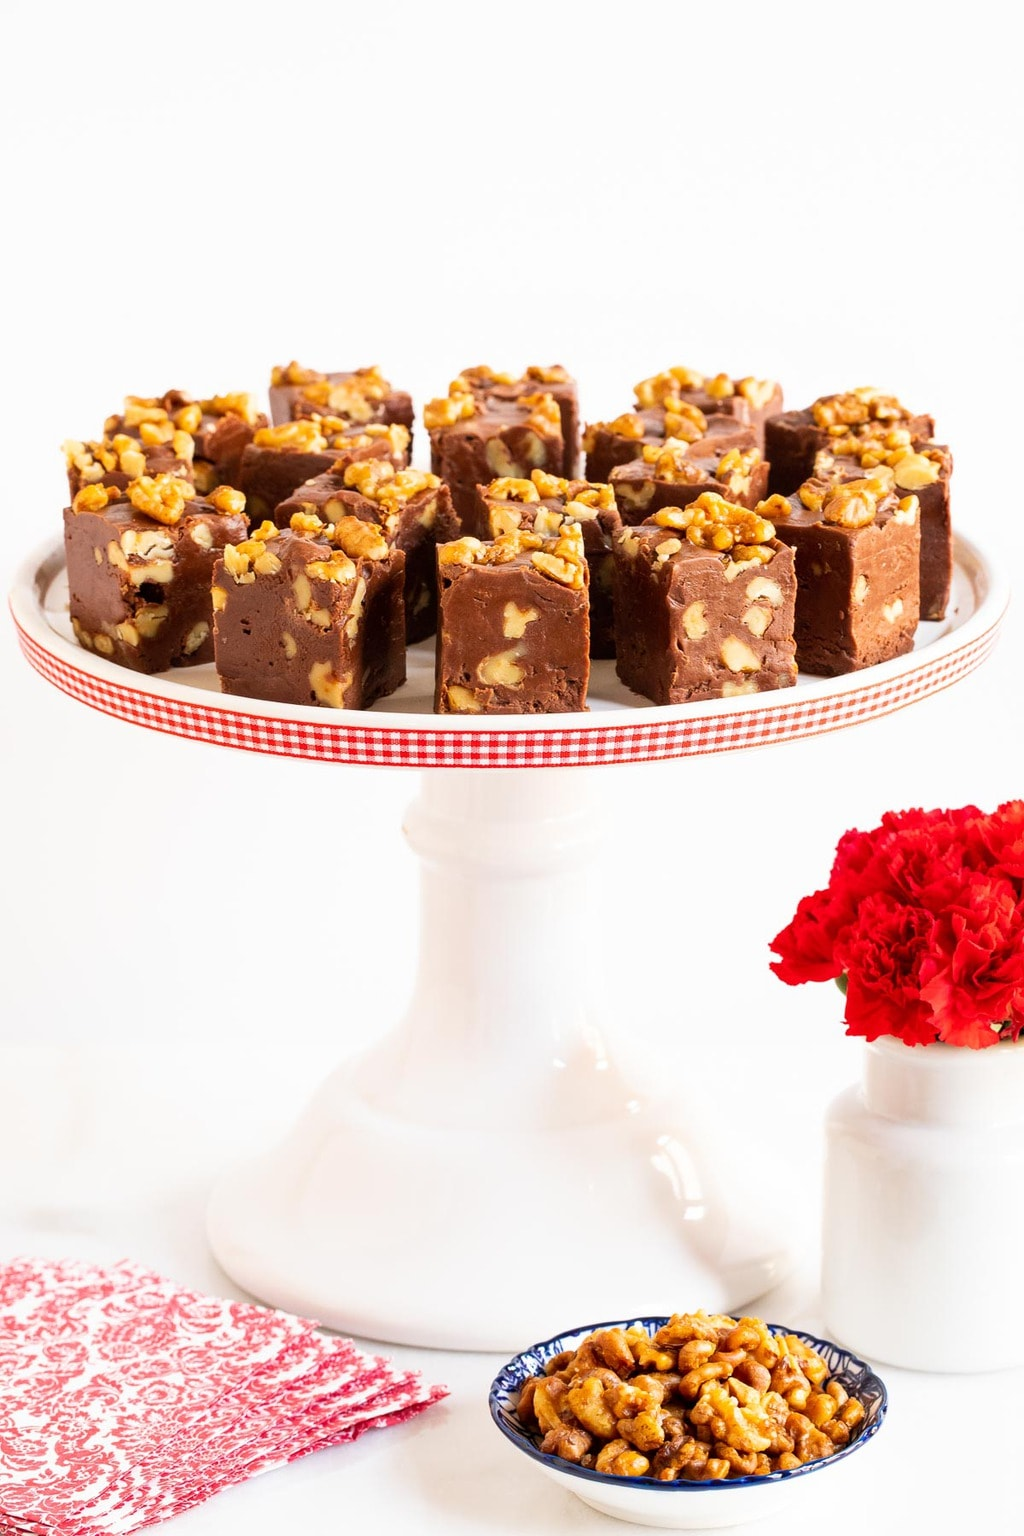 Vertical photo of a white presentation platter of Candied Walnut Chocolate Fantasy Fudge.